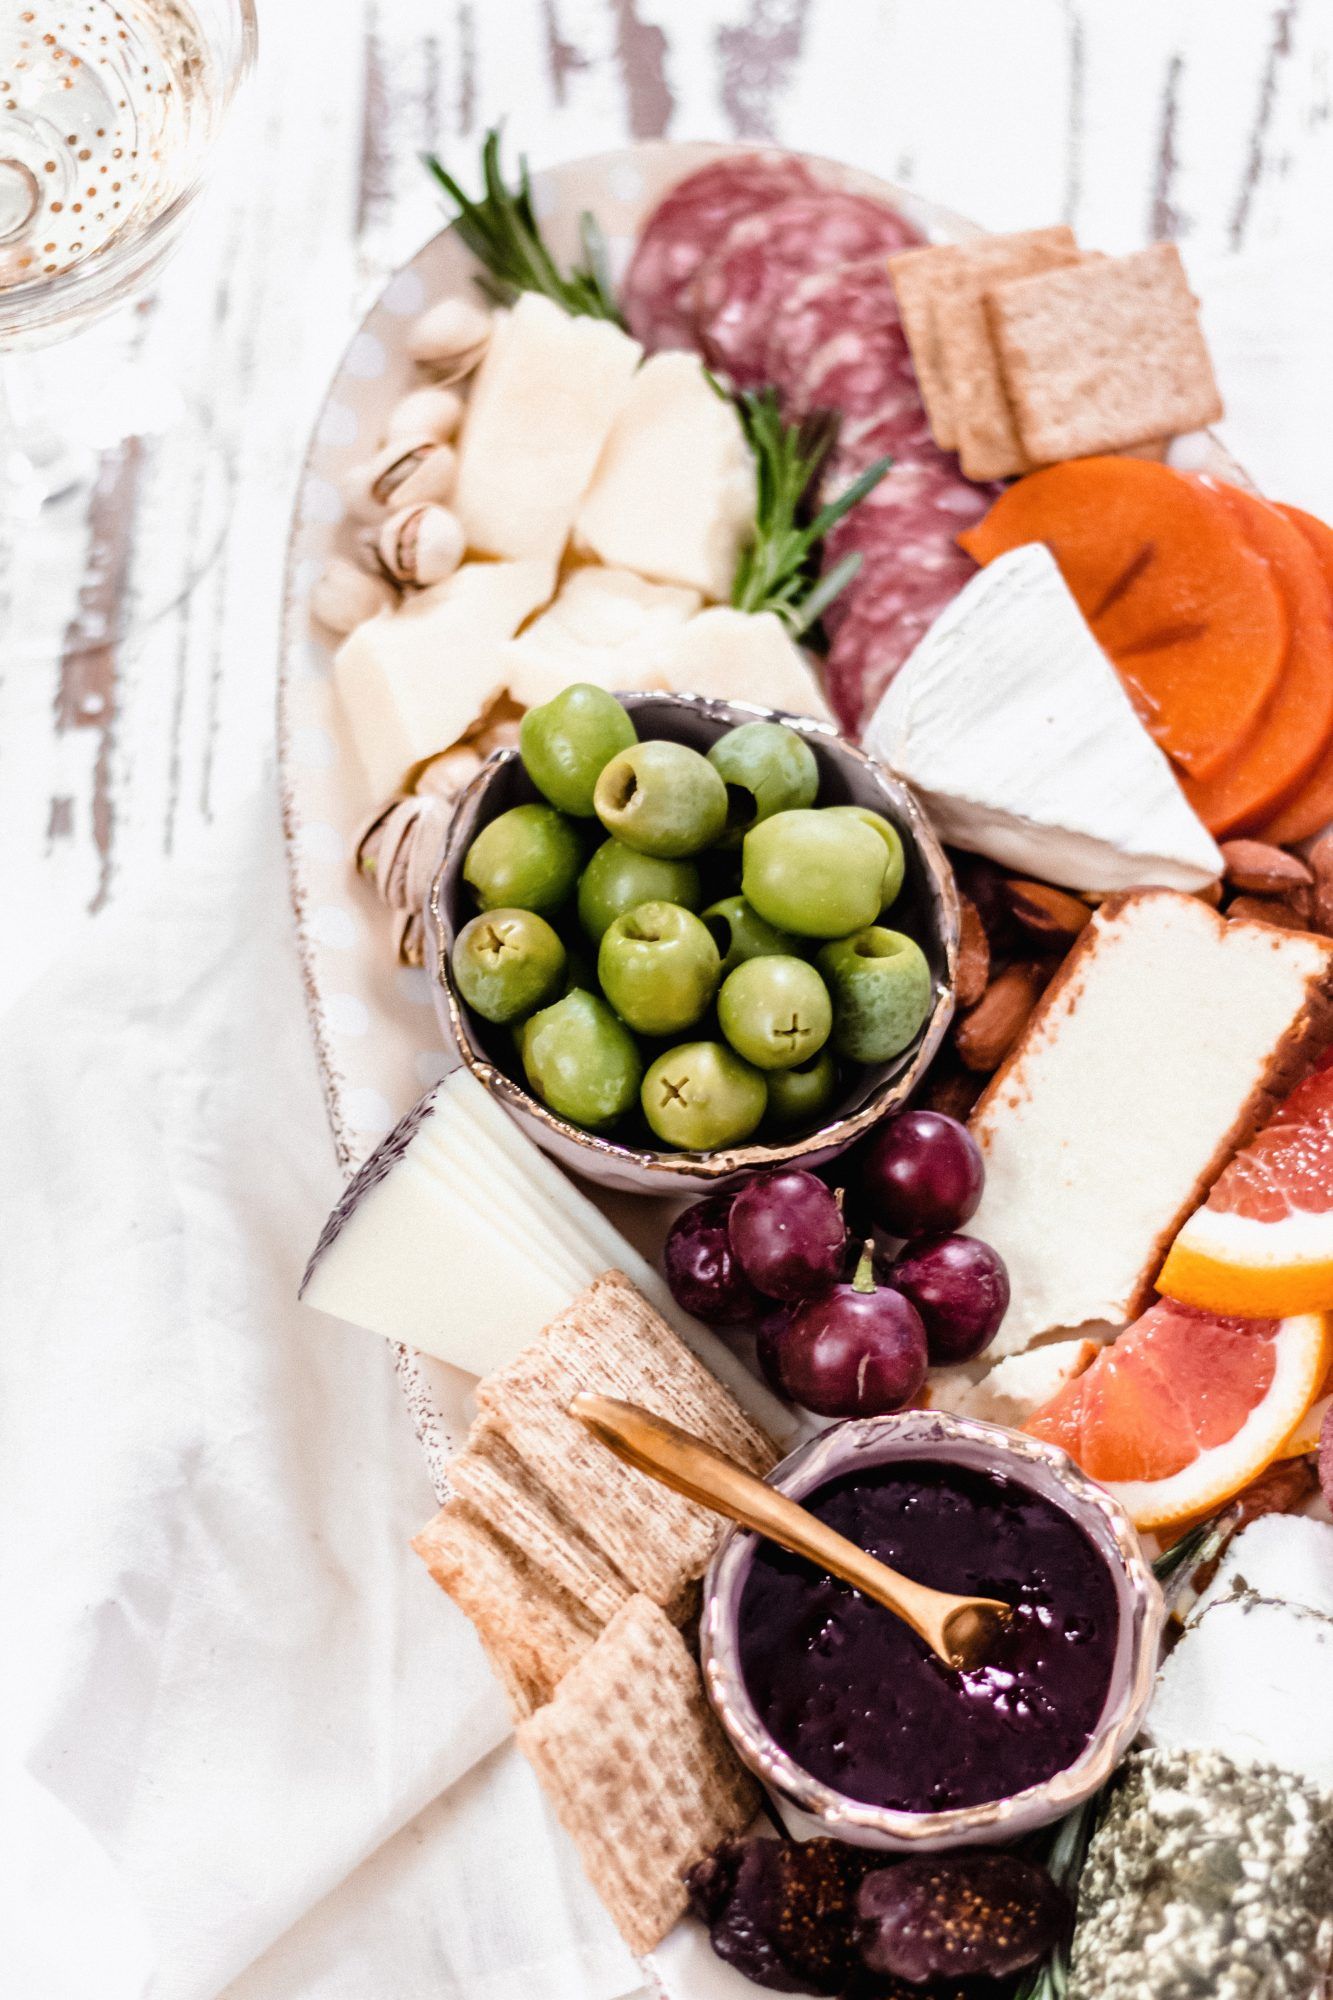 The perfect winter charcuterie board, step by step